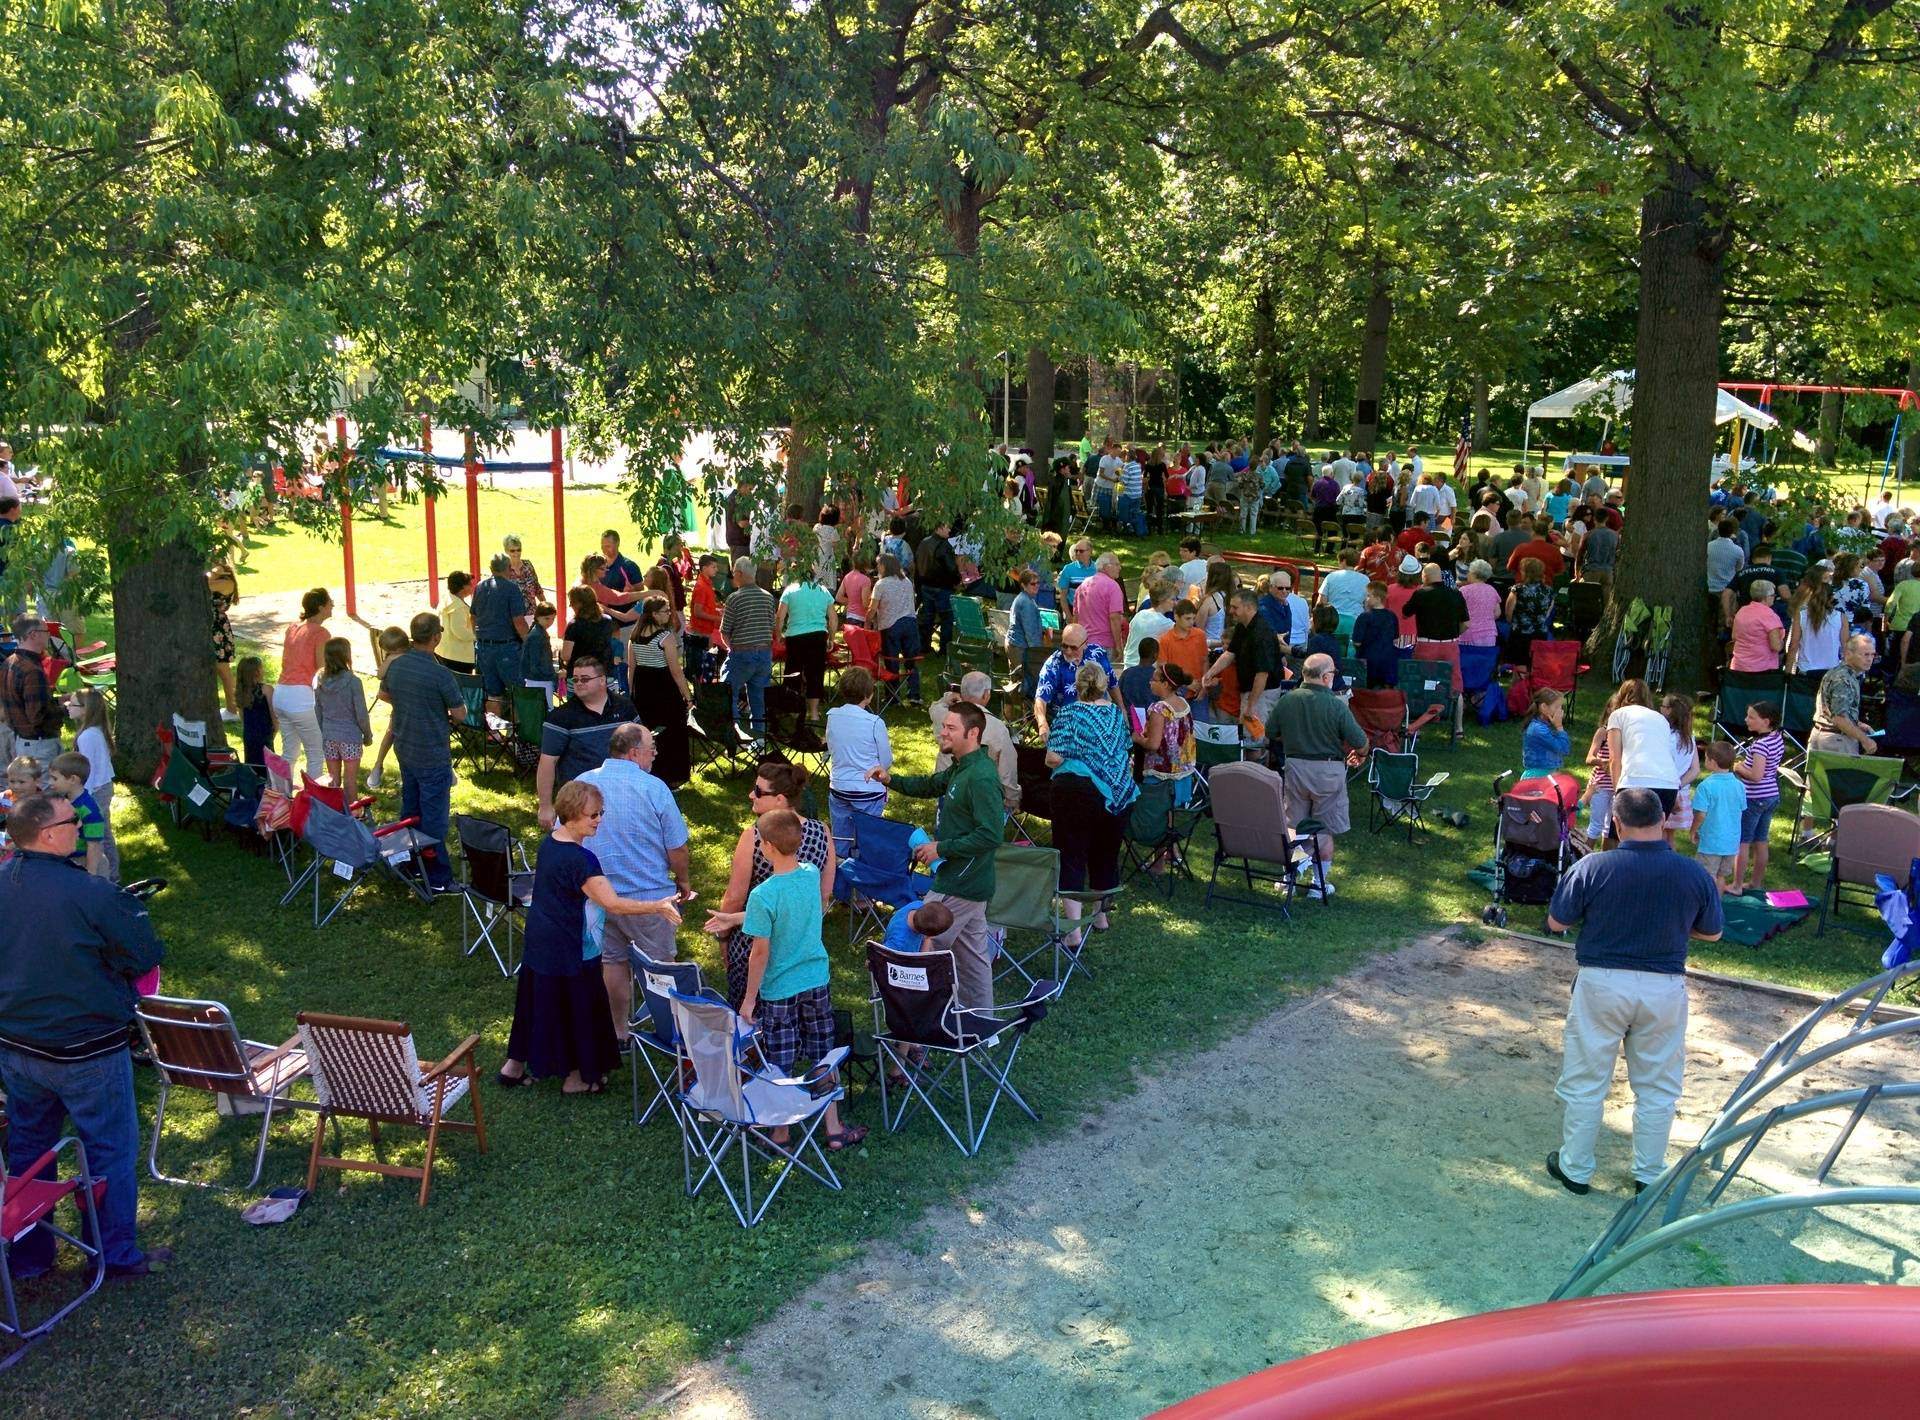 The Outdoor Mass drew hundreds of people to the park.